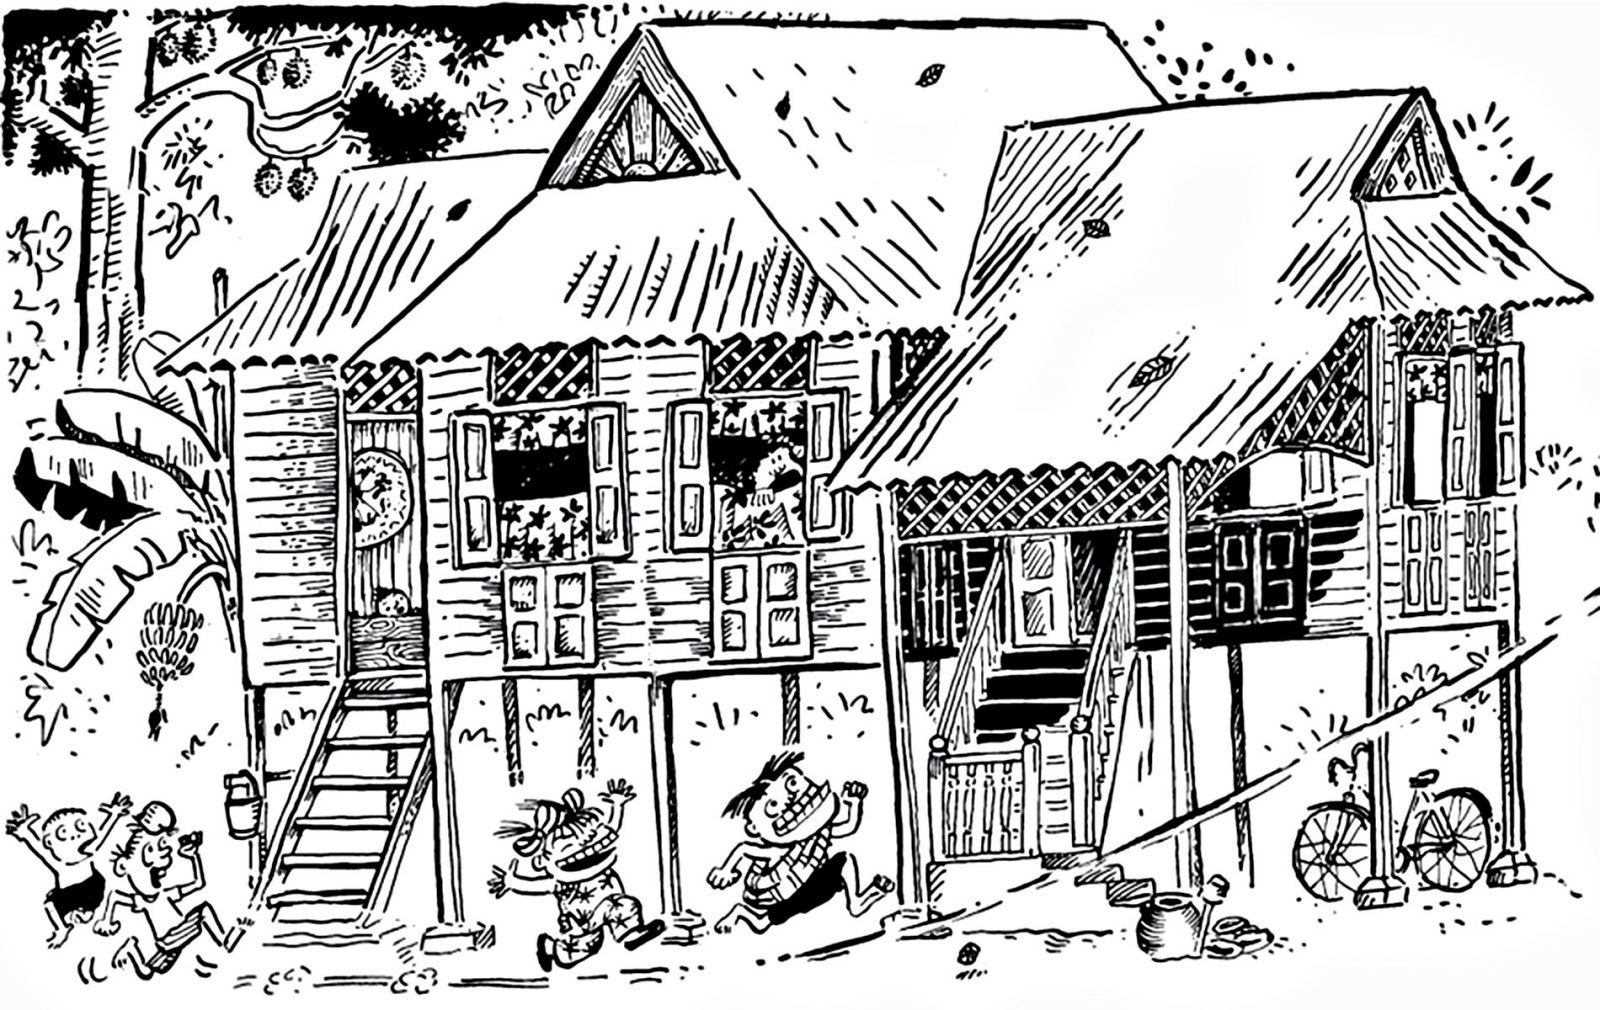 Famous Msian Cartoonist Lats Kampung Boy is Being Made